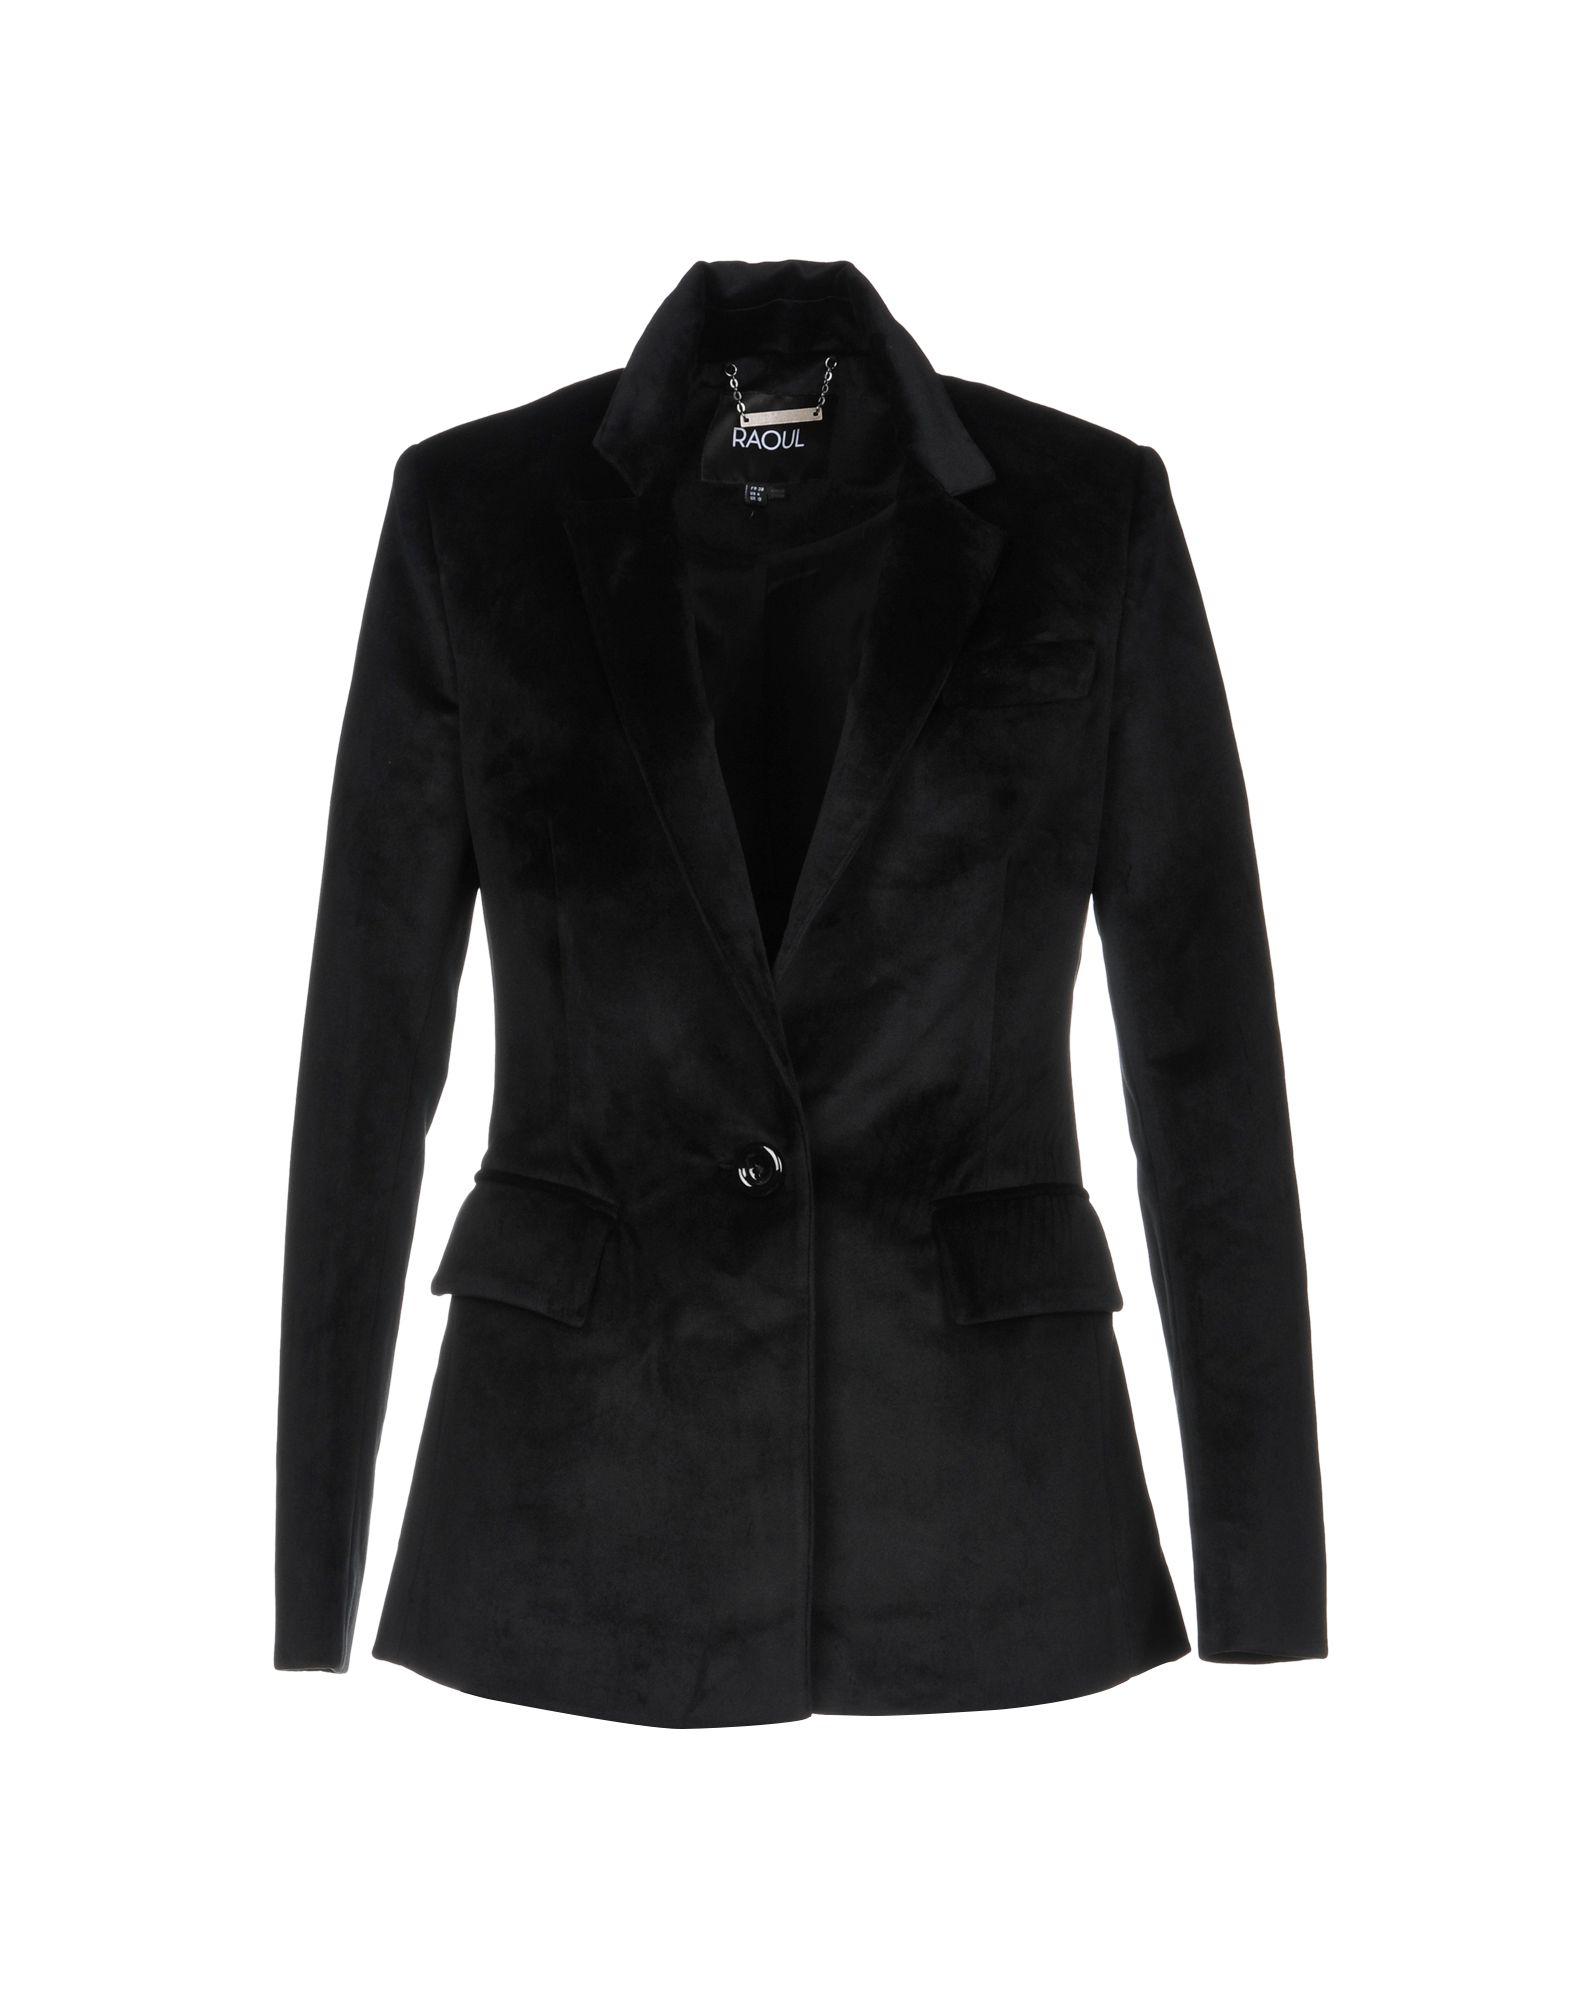 RAOUL Blazers in Black